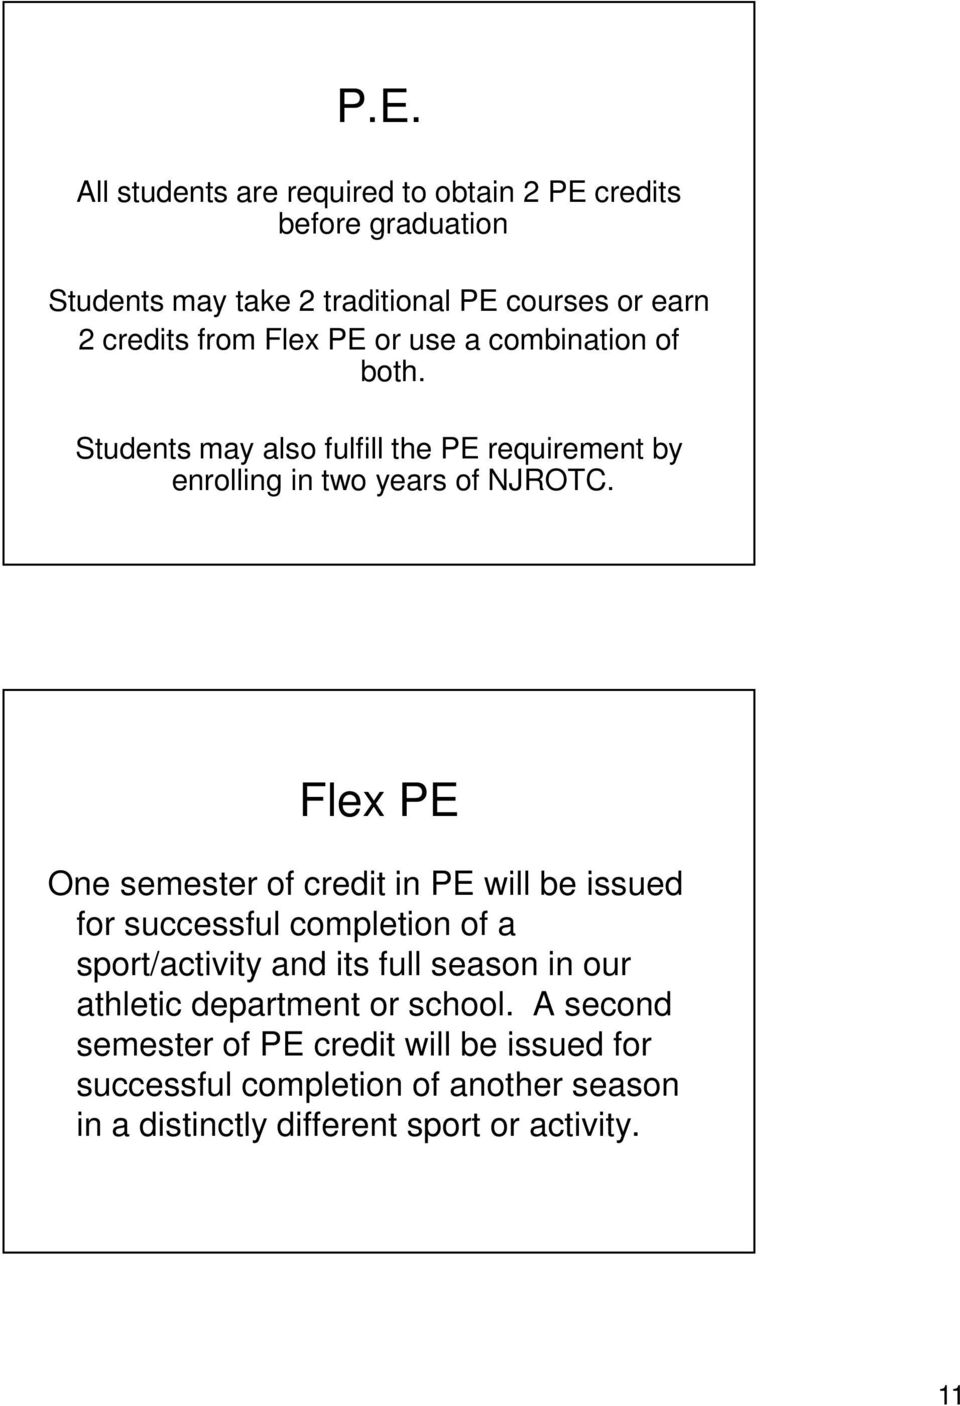 Flex PE One semester of credit in PE will be issued for successful completion of a sport/activity and its full season in our athletic